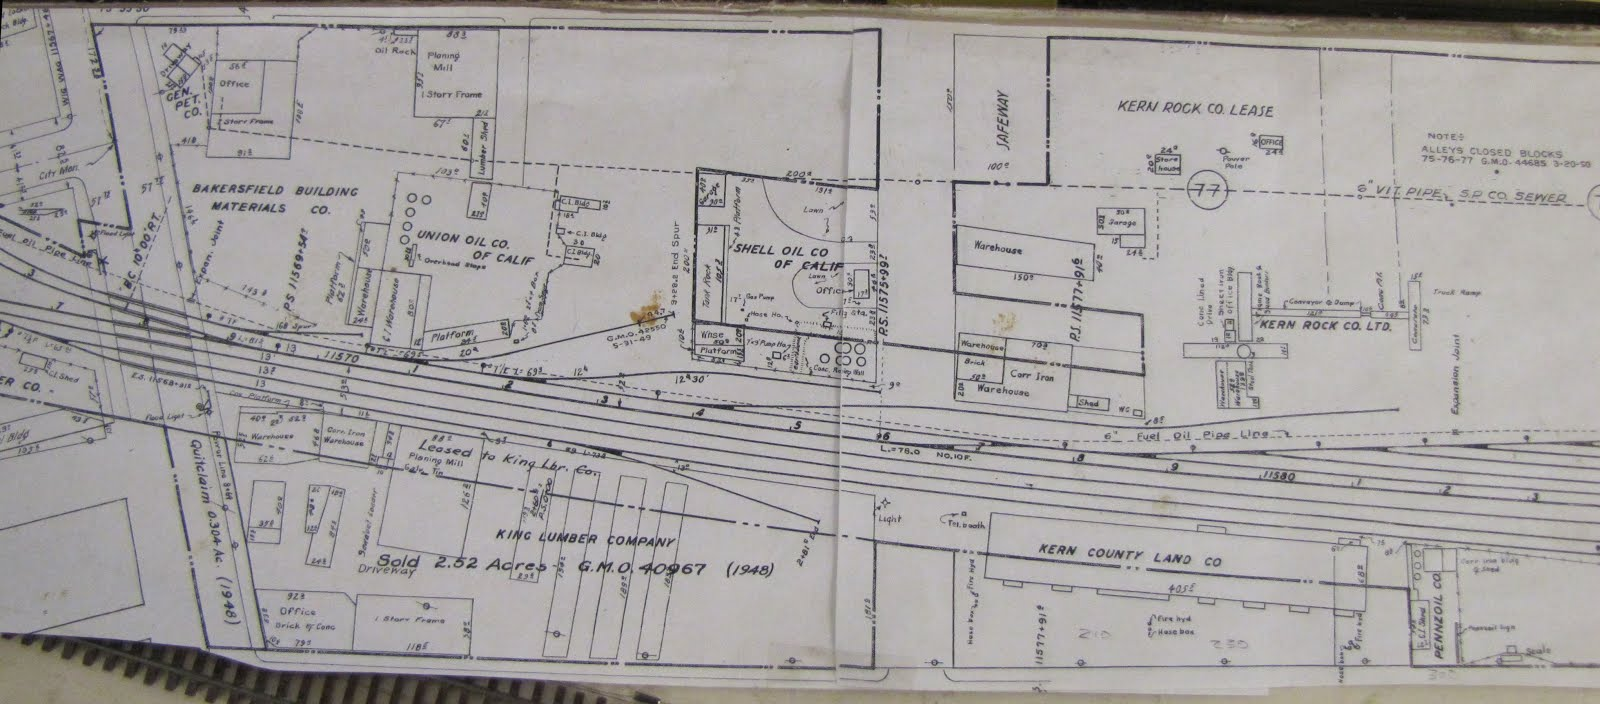 west bakersfield sacramento st vertically in the center of the drawing lmmrrc collection